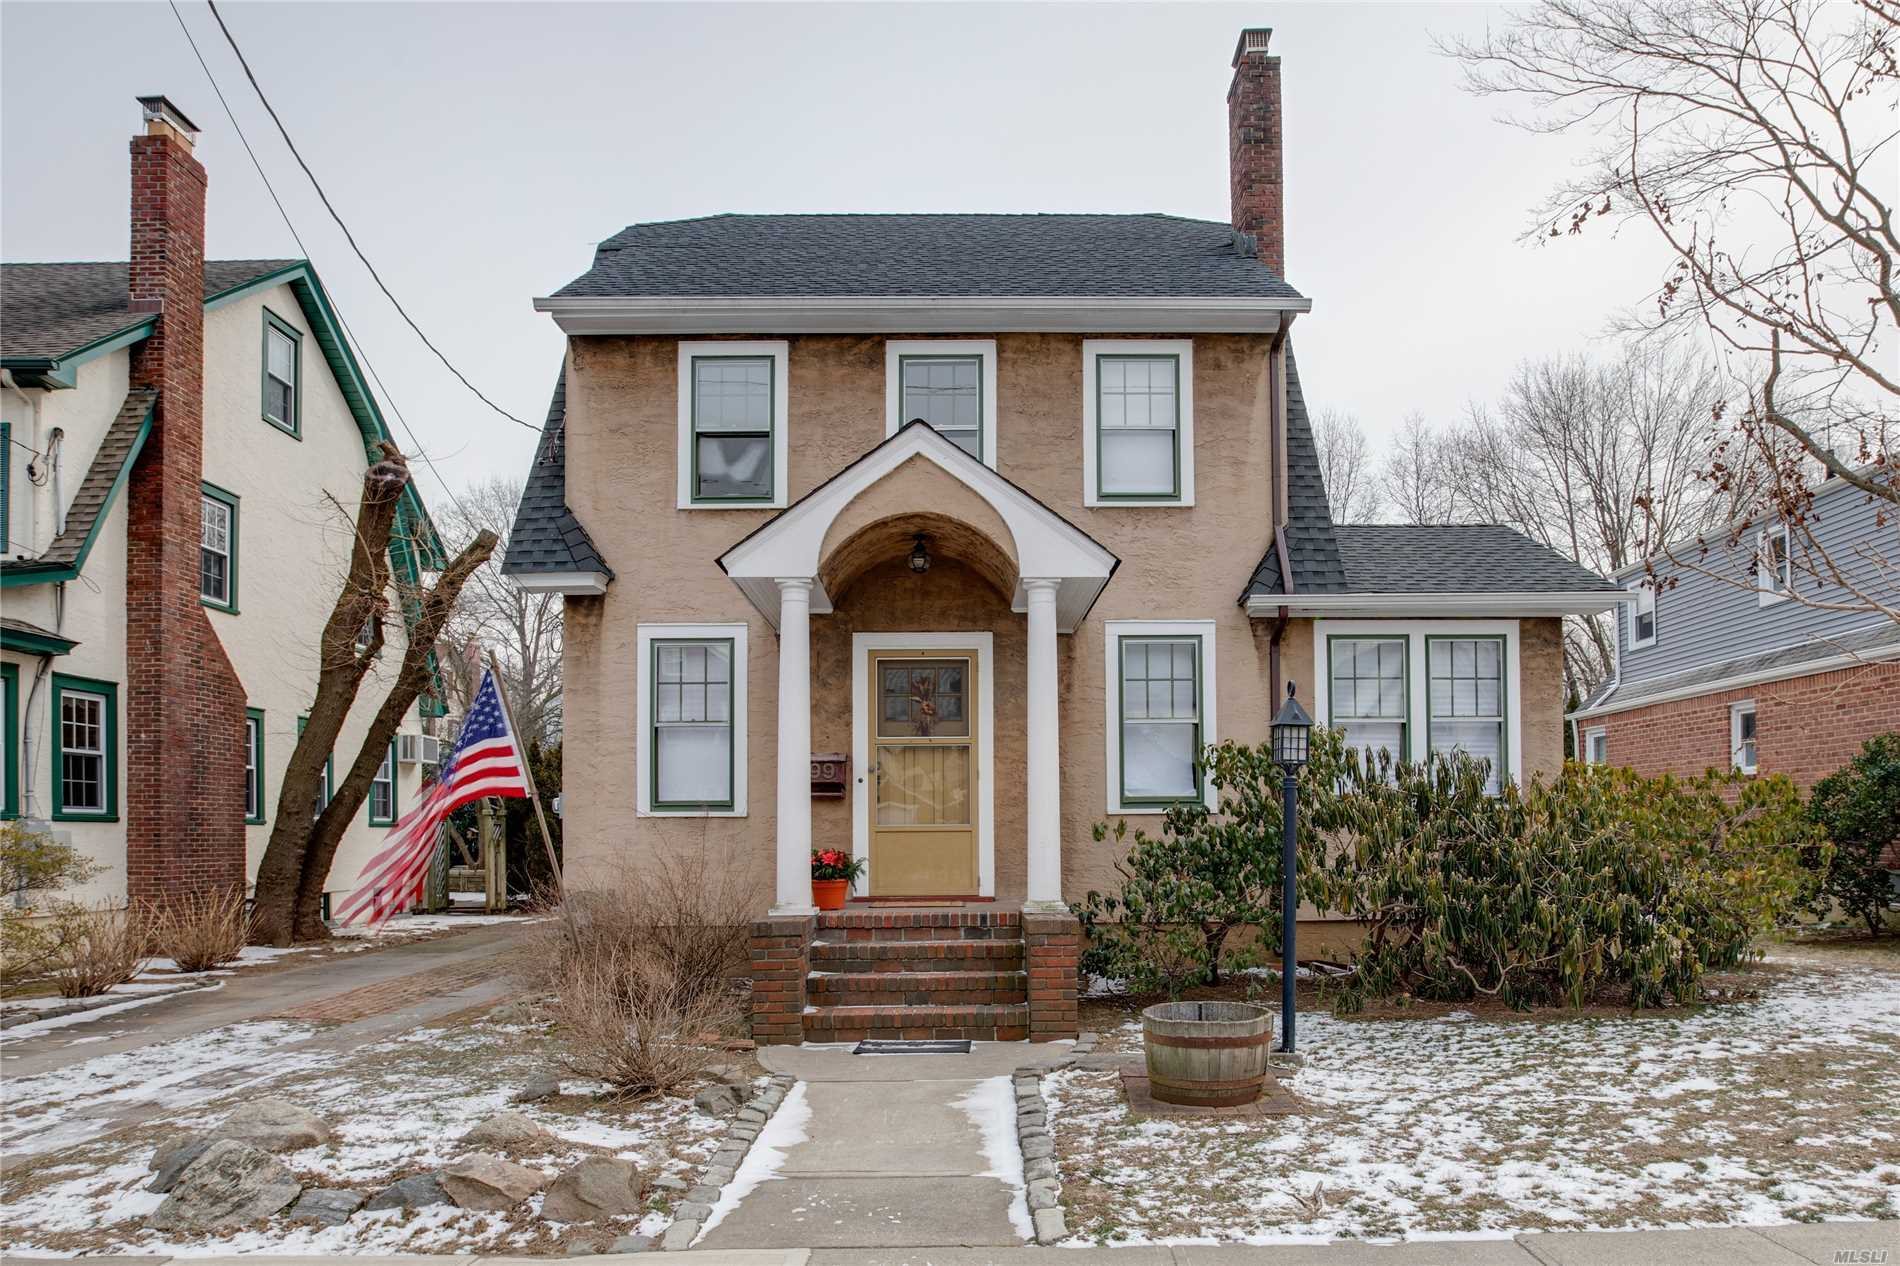 Lovely Dutch Colonial On Prime Block In The Heart Of Floral Park Village. Oversized 60 X 100 Property With Mid-Block Location. Nice Size Living Room With Fireplace. Old World Charm, New Full Bath, Lovely Wood Floors Throughout And Wonderful Sunlight. A Couple Of Blocks From Lirr Station, Shopping, Restaurants, Schools & Recreation Center With Pool.